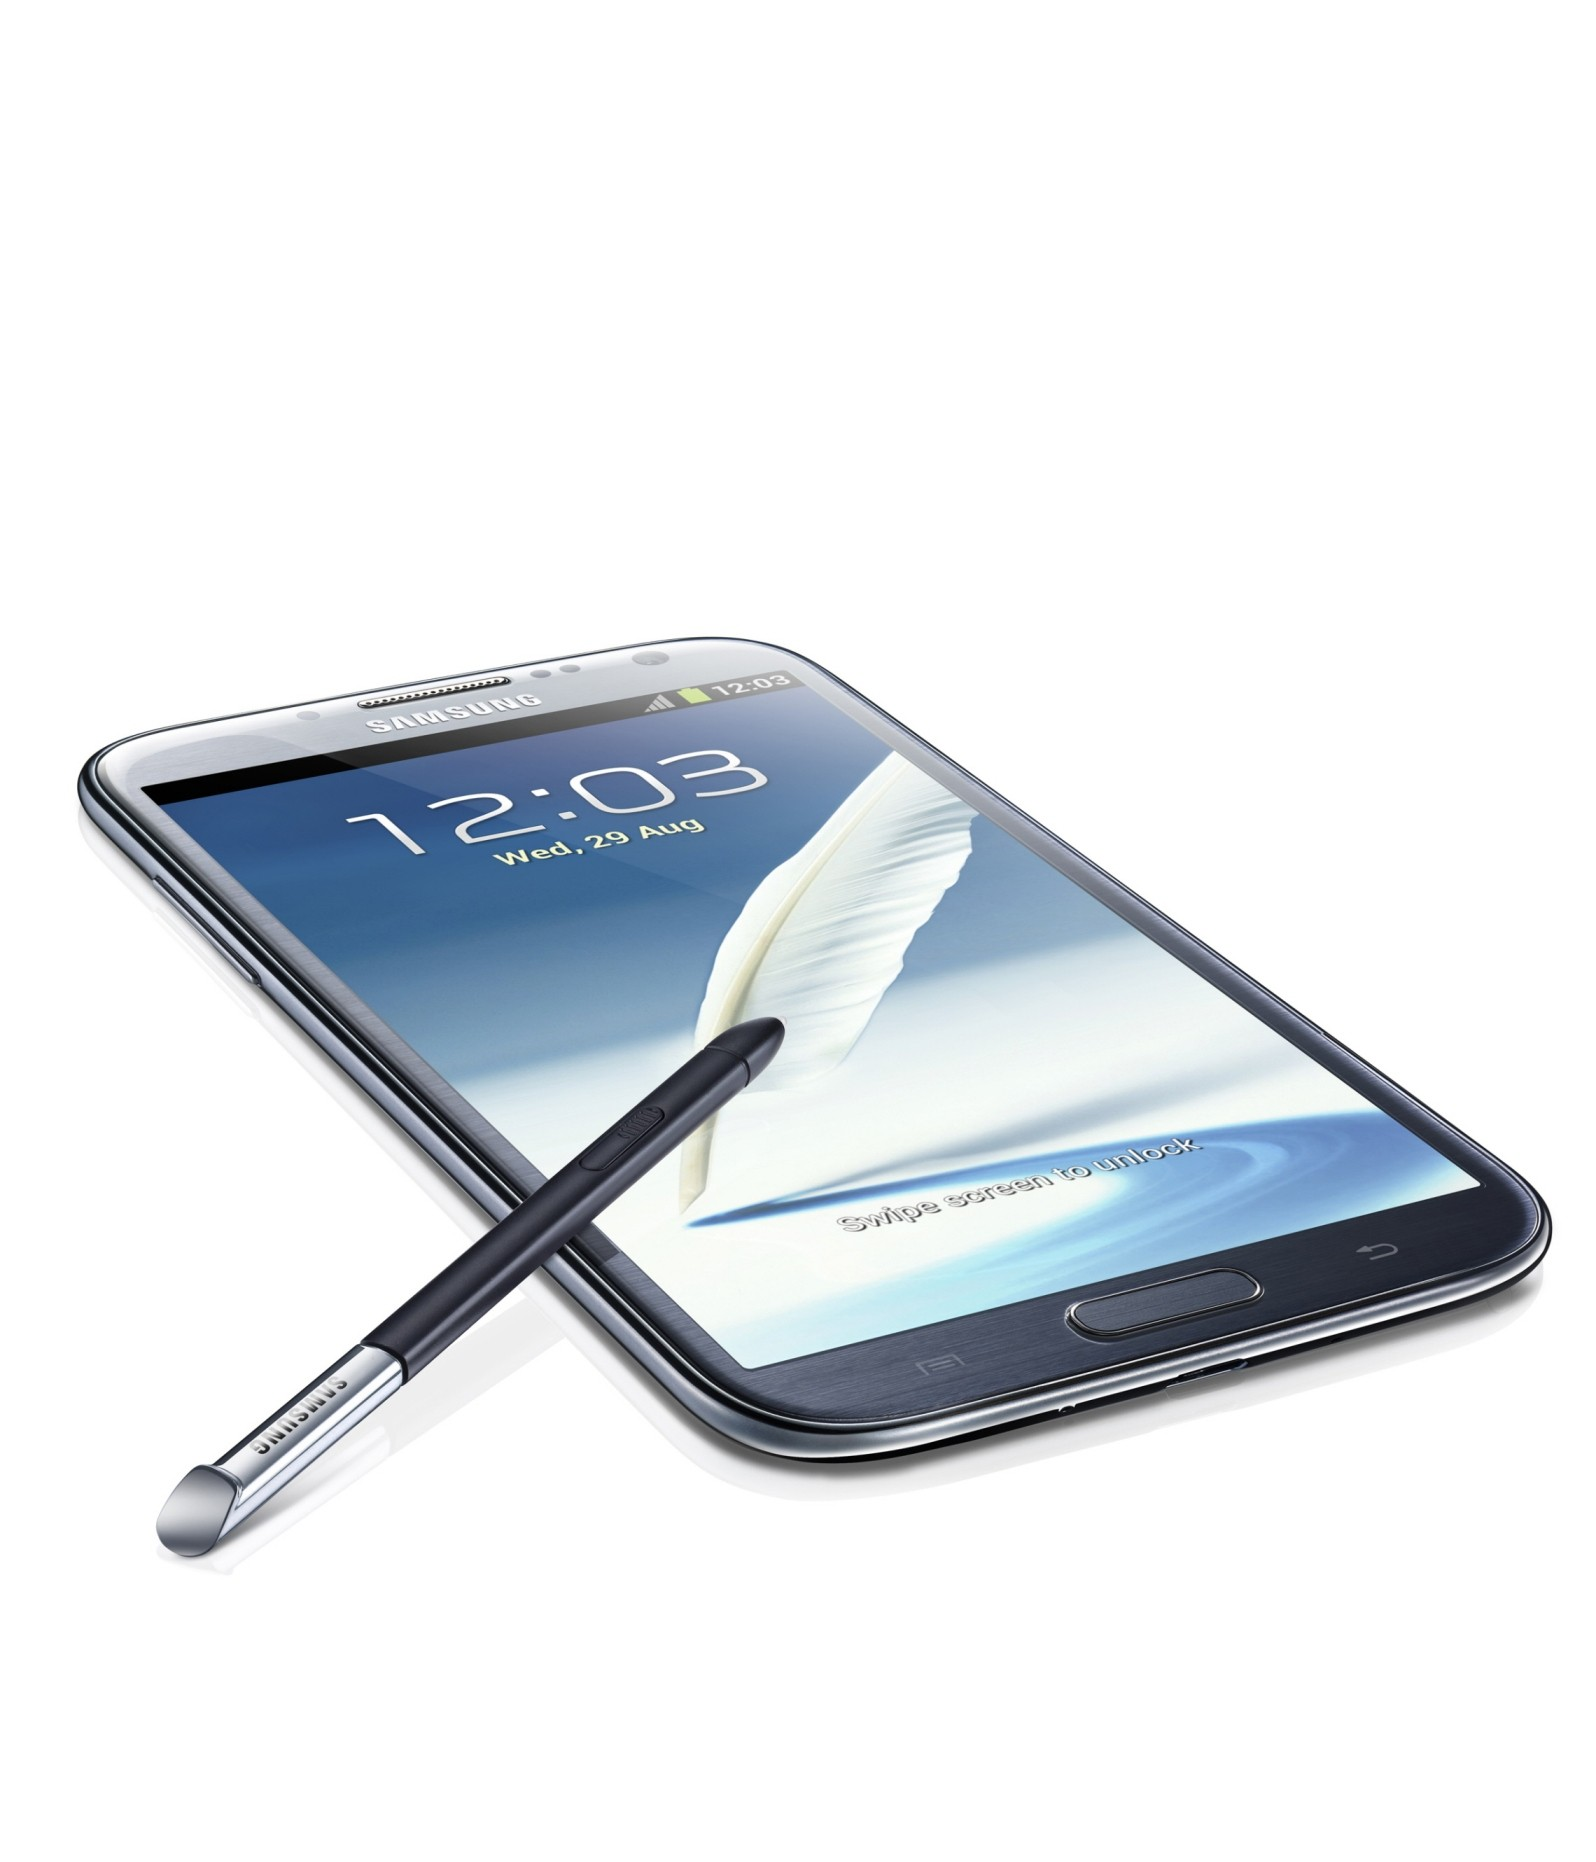 Galaxy Note II: Samsung pubblica un video sul photo editing con PicsArt